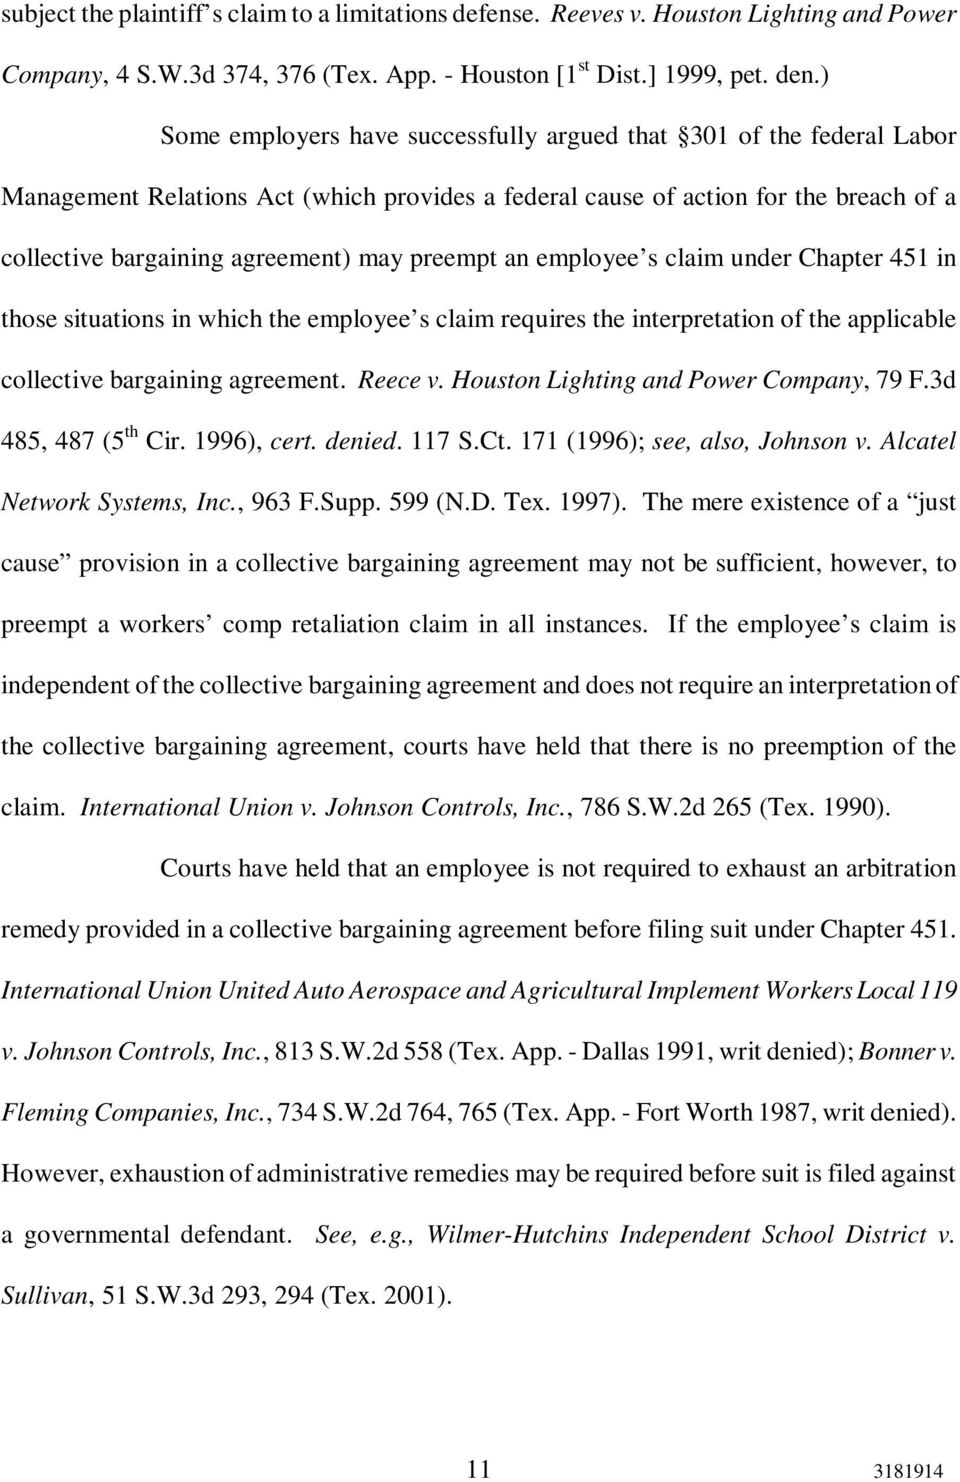 preempt an employee s claim under Chapter 451 in those situations in which the employee s claim requires the interpretation of the applicable collective bargaining agreement. Reece v.